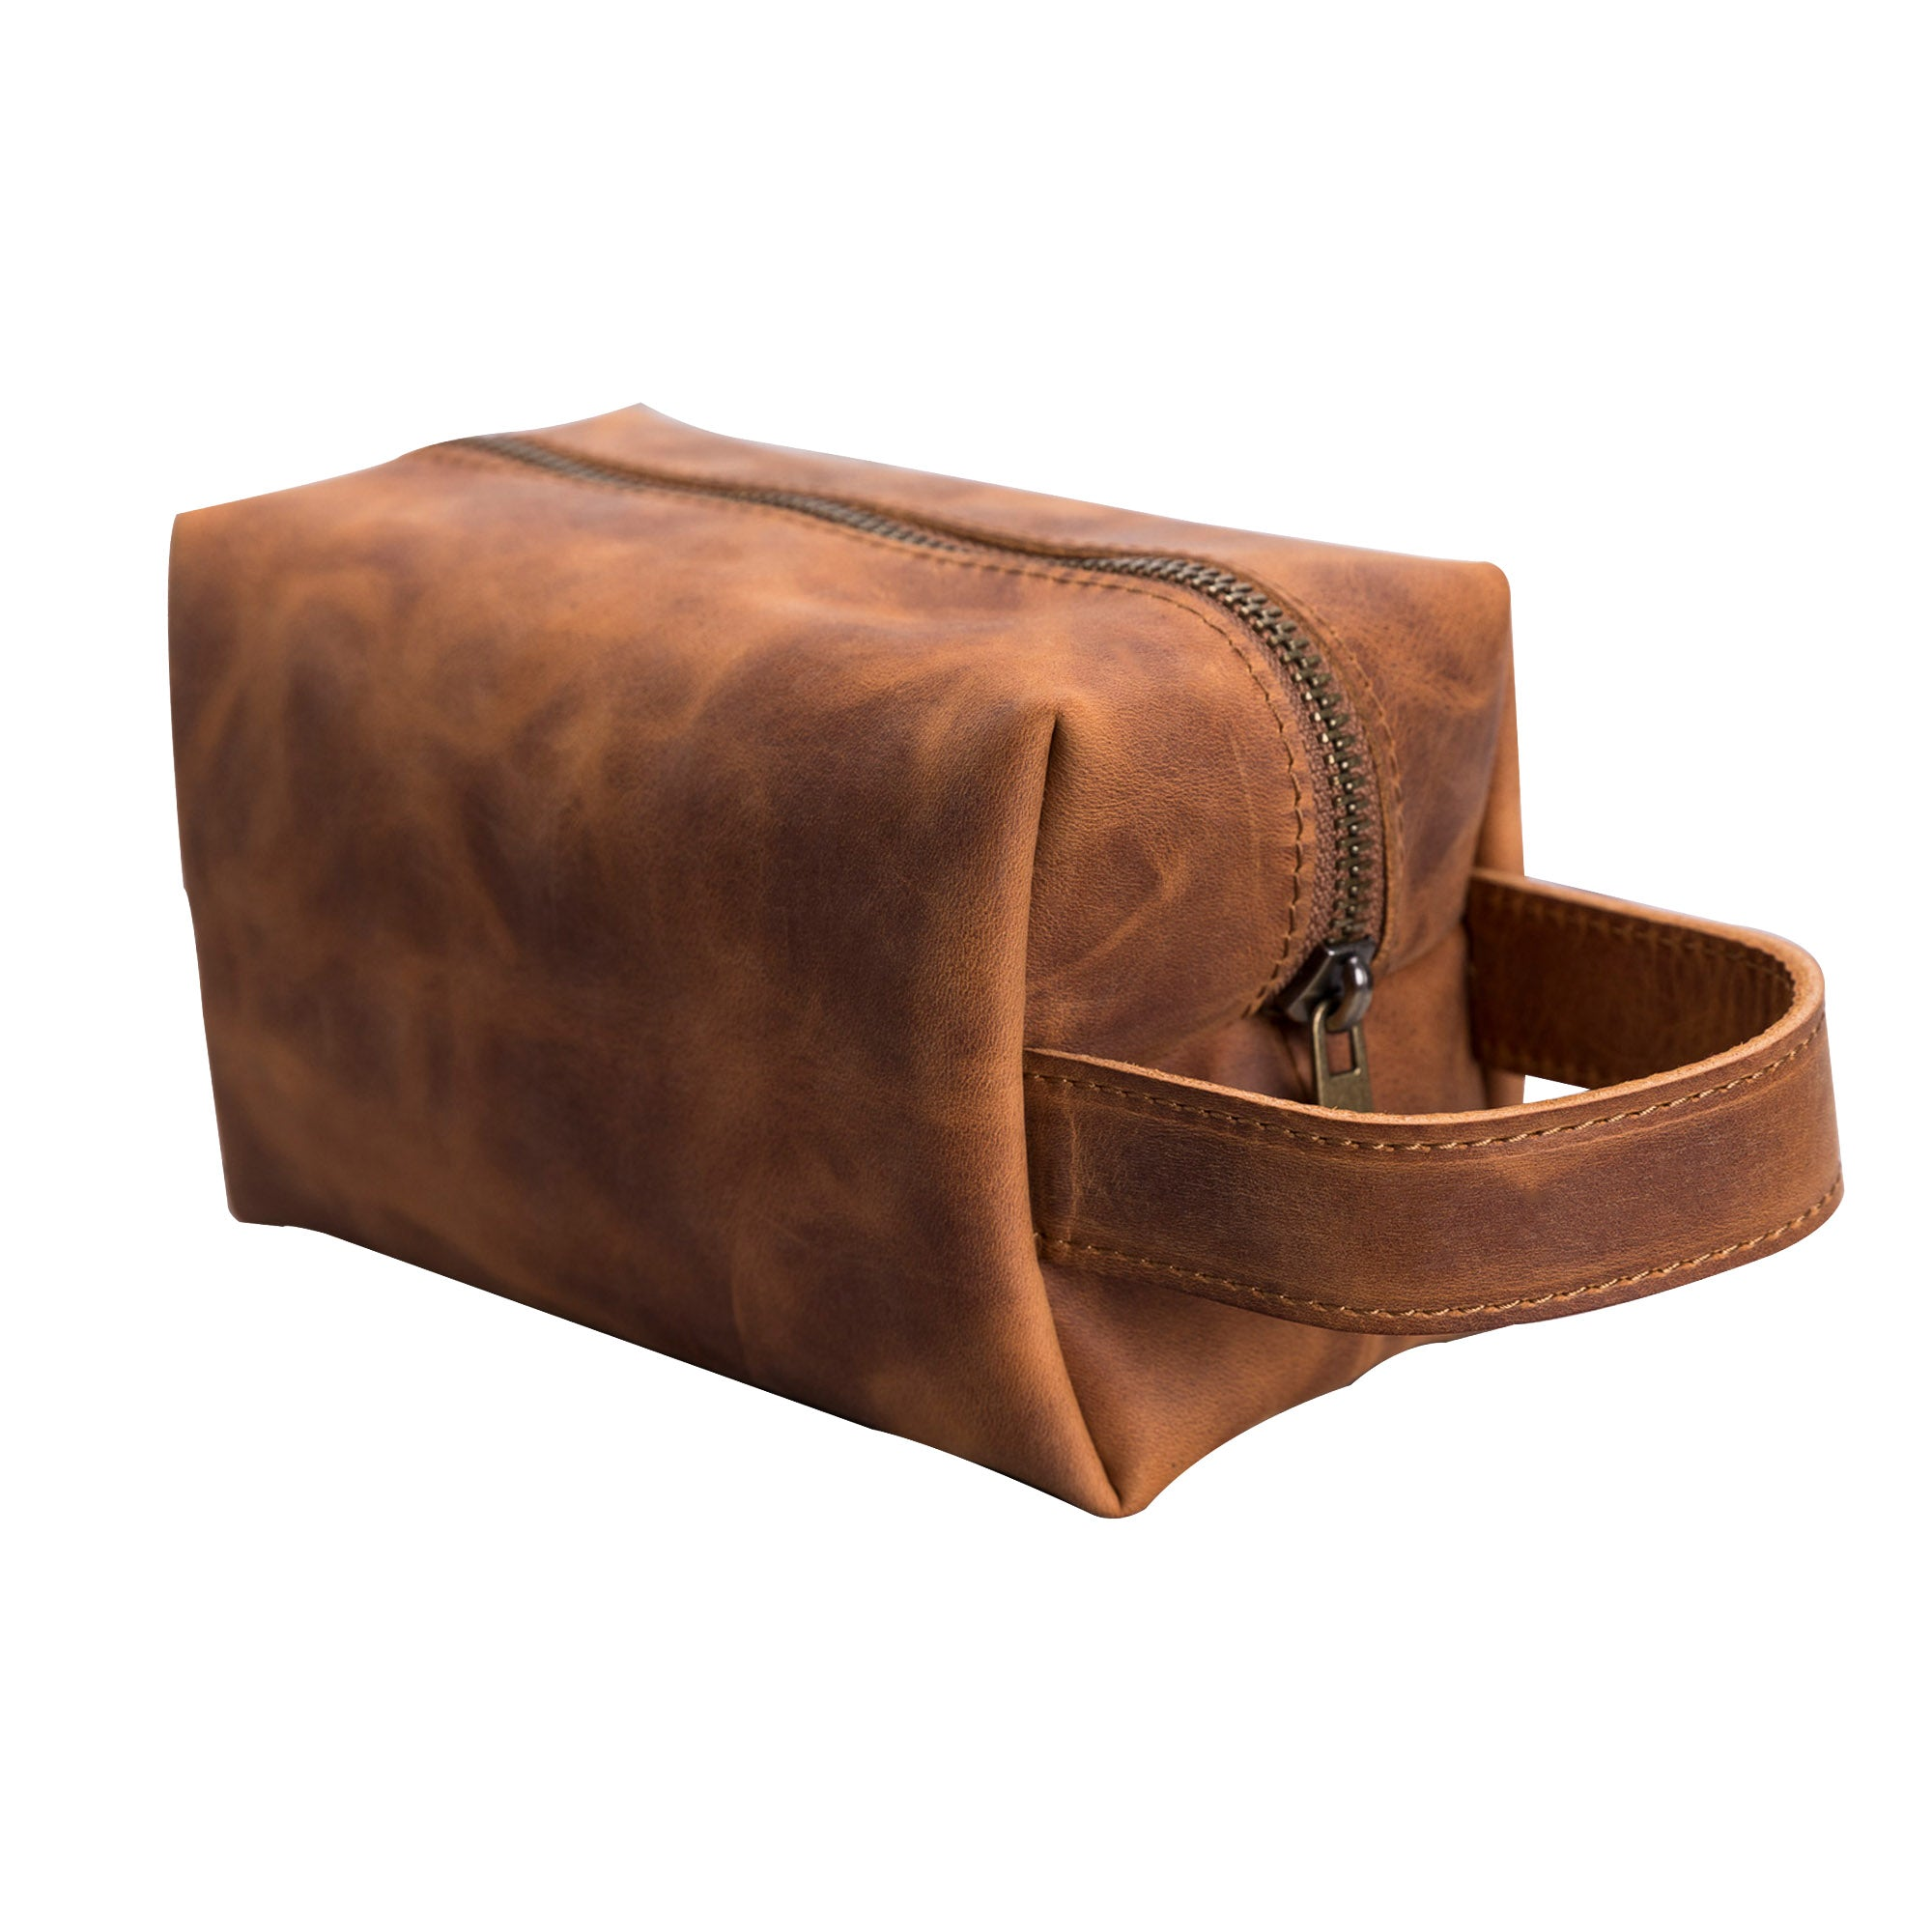 Eve Toiletry / Make Up Leather Bag (Large) - TAN - saracleather